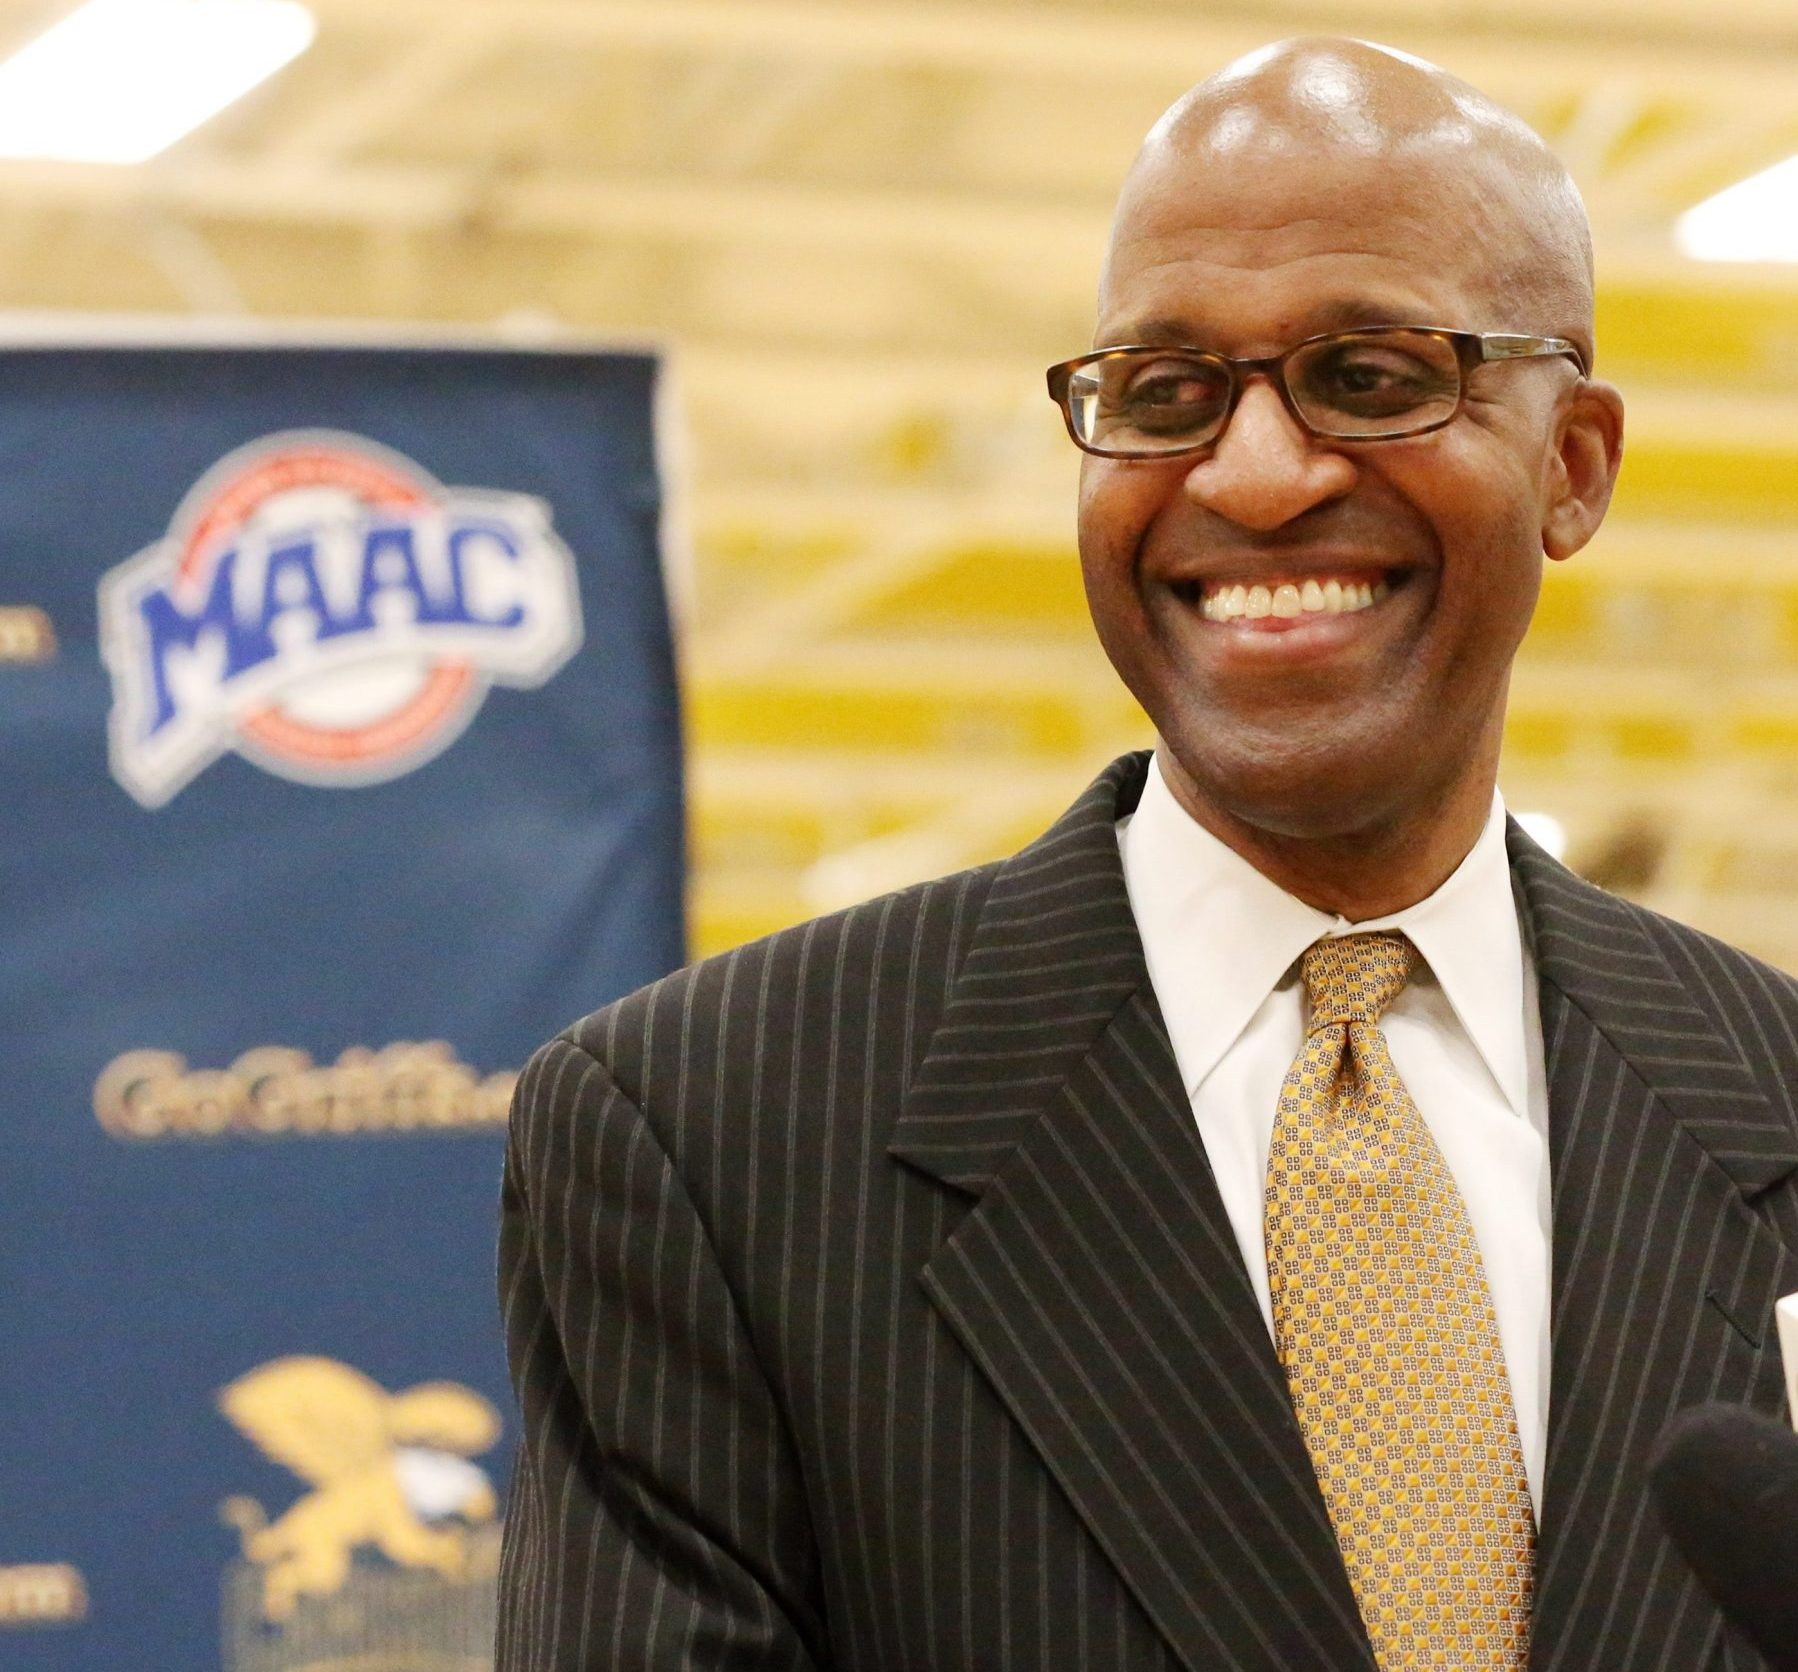 Canisius' Reggie Witherspoon smiles while being introduced as the new head basketball coach during a press conference at Koessler Athletic Center  on Tuesday, May 31, 2016.  (James P. McCoy/Buffalo News)